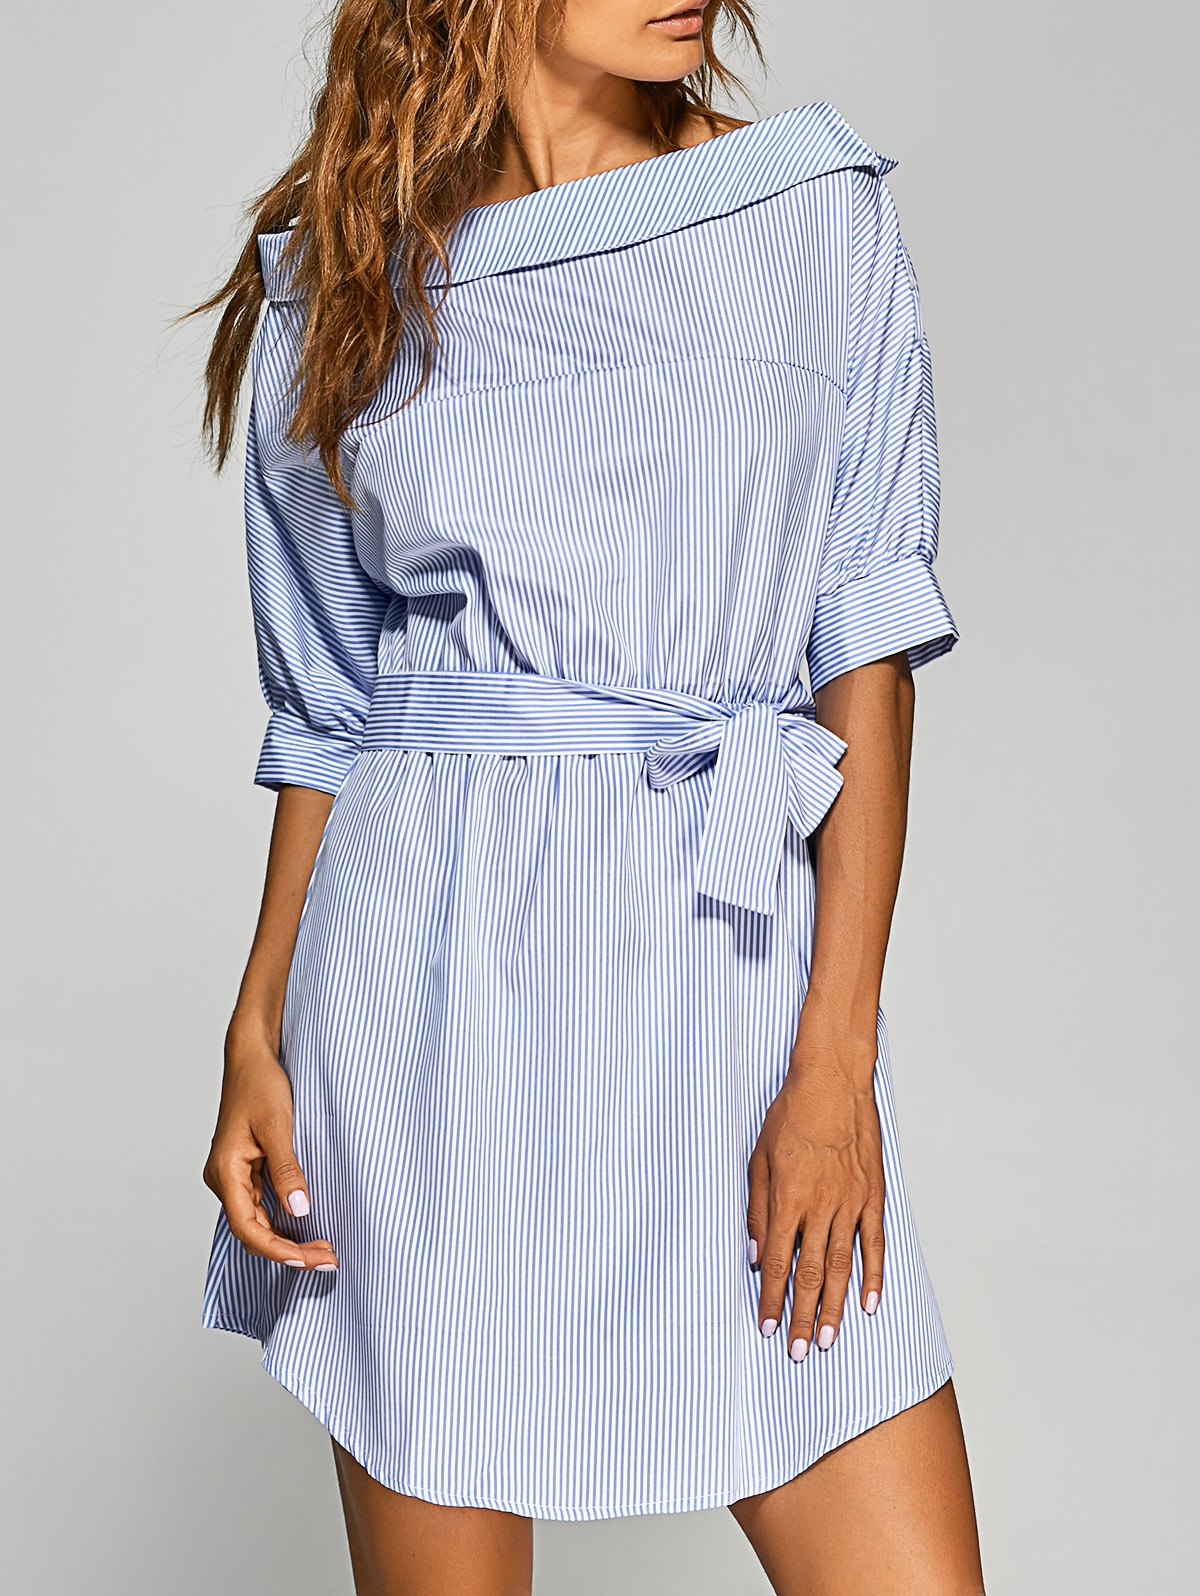 Asymmetric Neckline Belted Dress